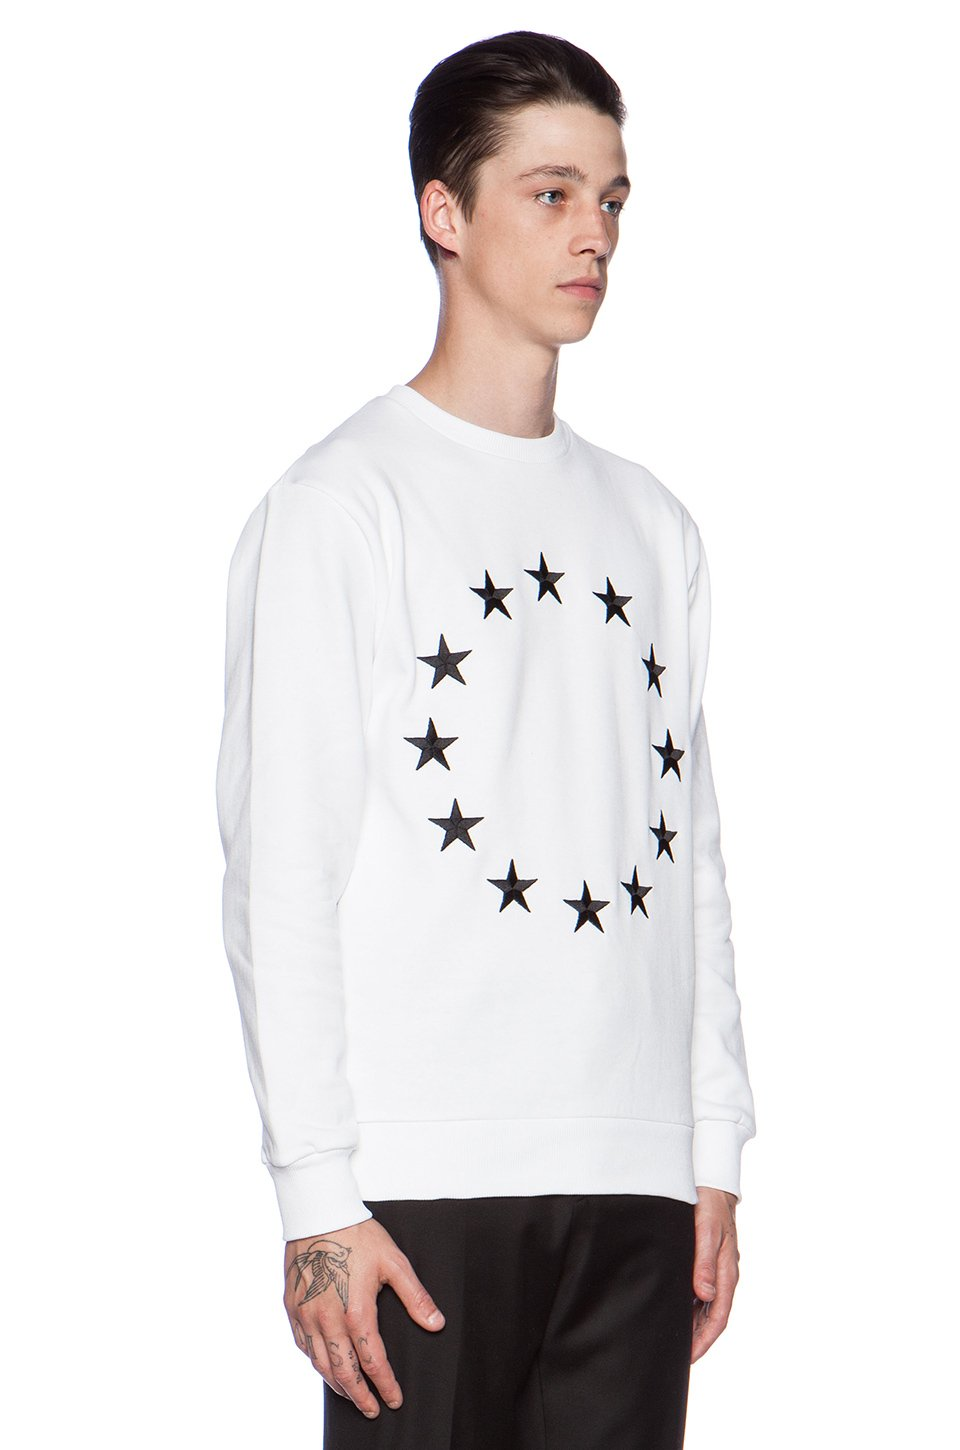 Clearance Affordable Good Selling Cheap Price White Etoile Europa Sweatshirt Outlet Visa Payment Free Shipping Brand New Unisex Cheap Price Discount Authentic GXAiNO